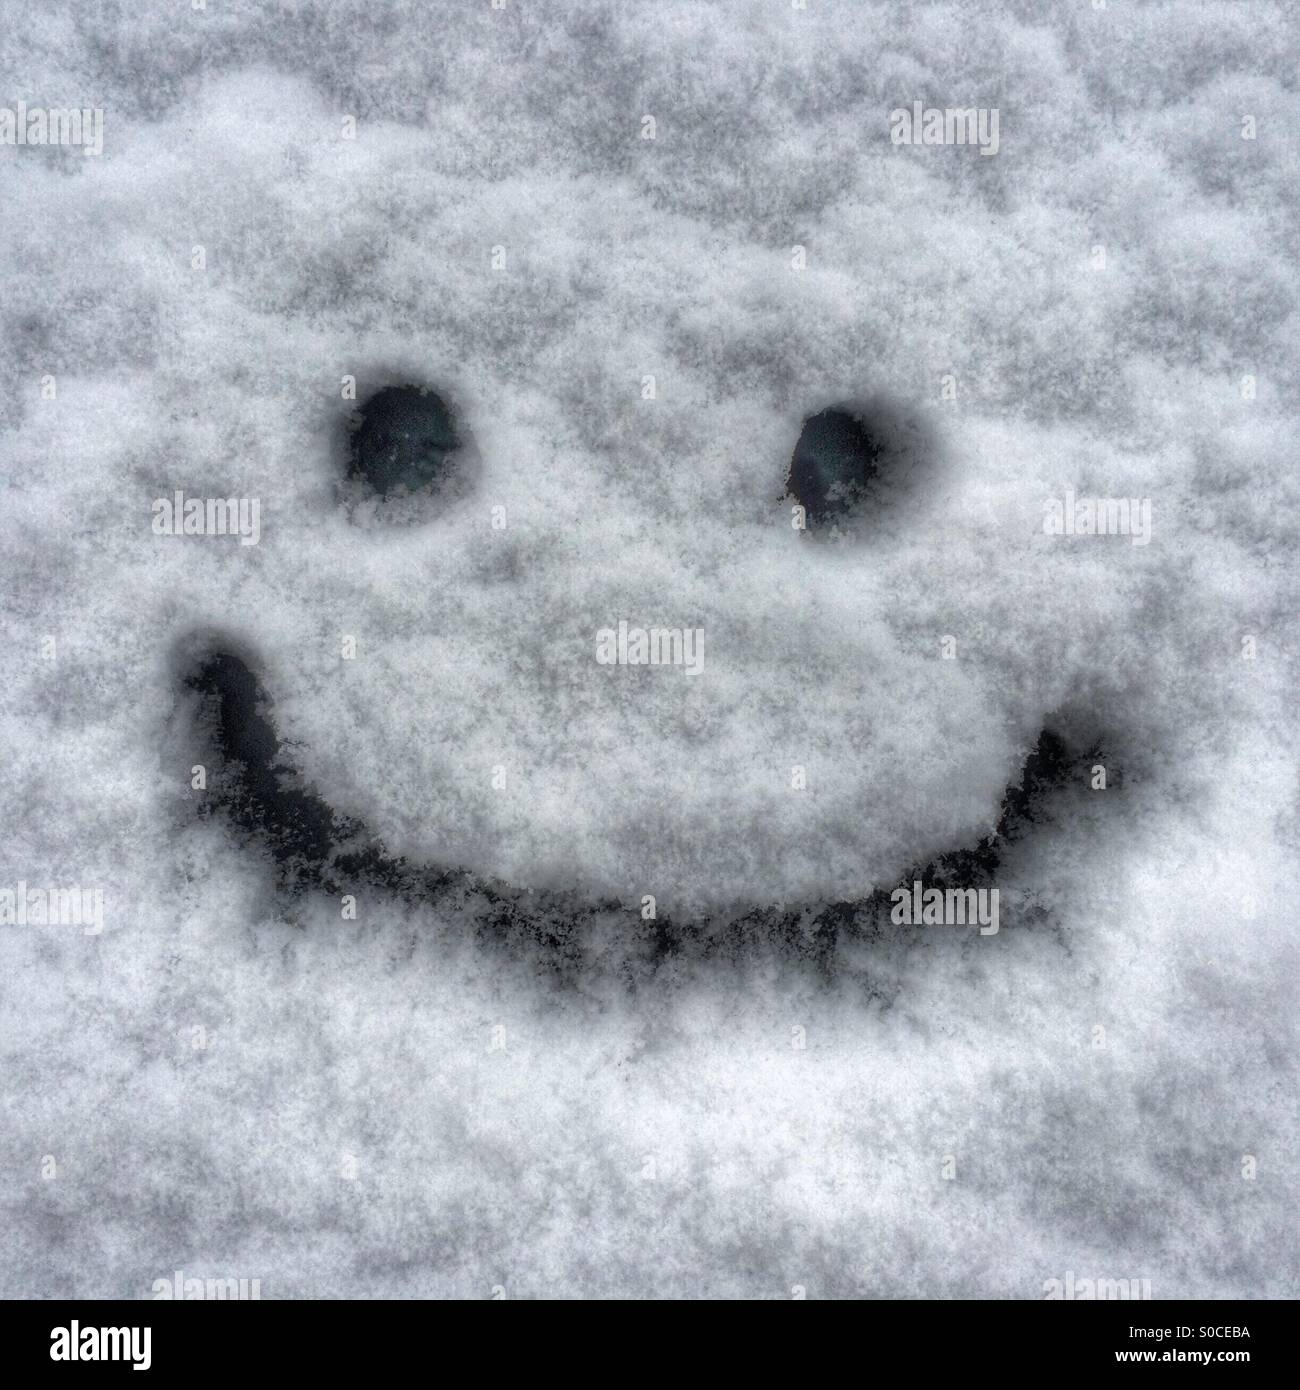 Don't worry, be happy - a smiley face drawn on a snowy car windshield - Stock Image